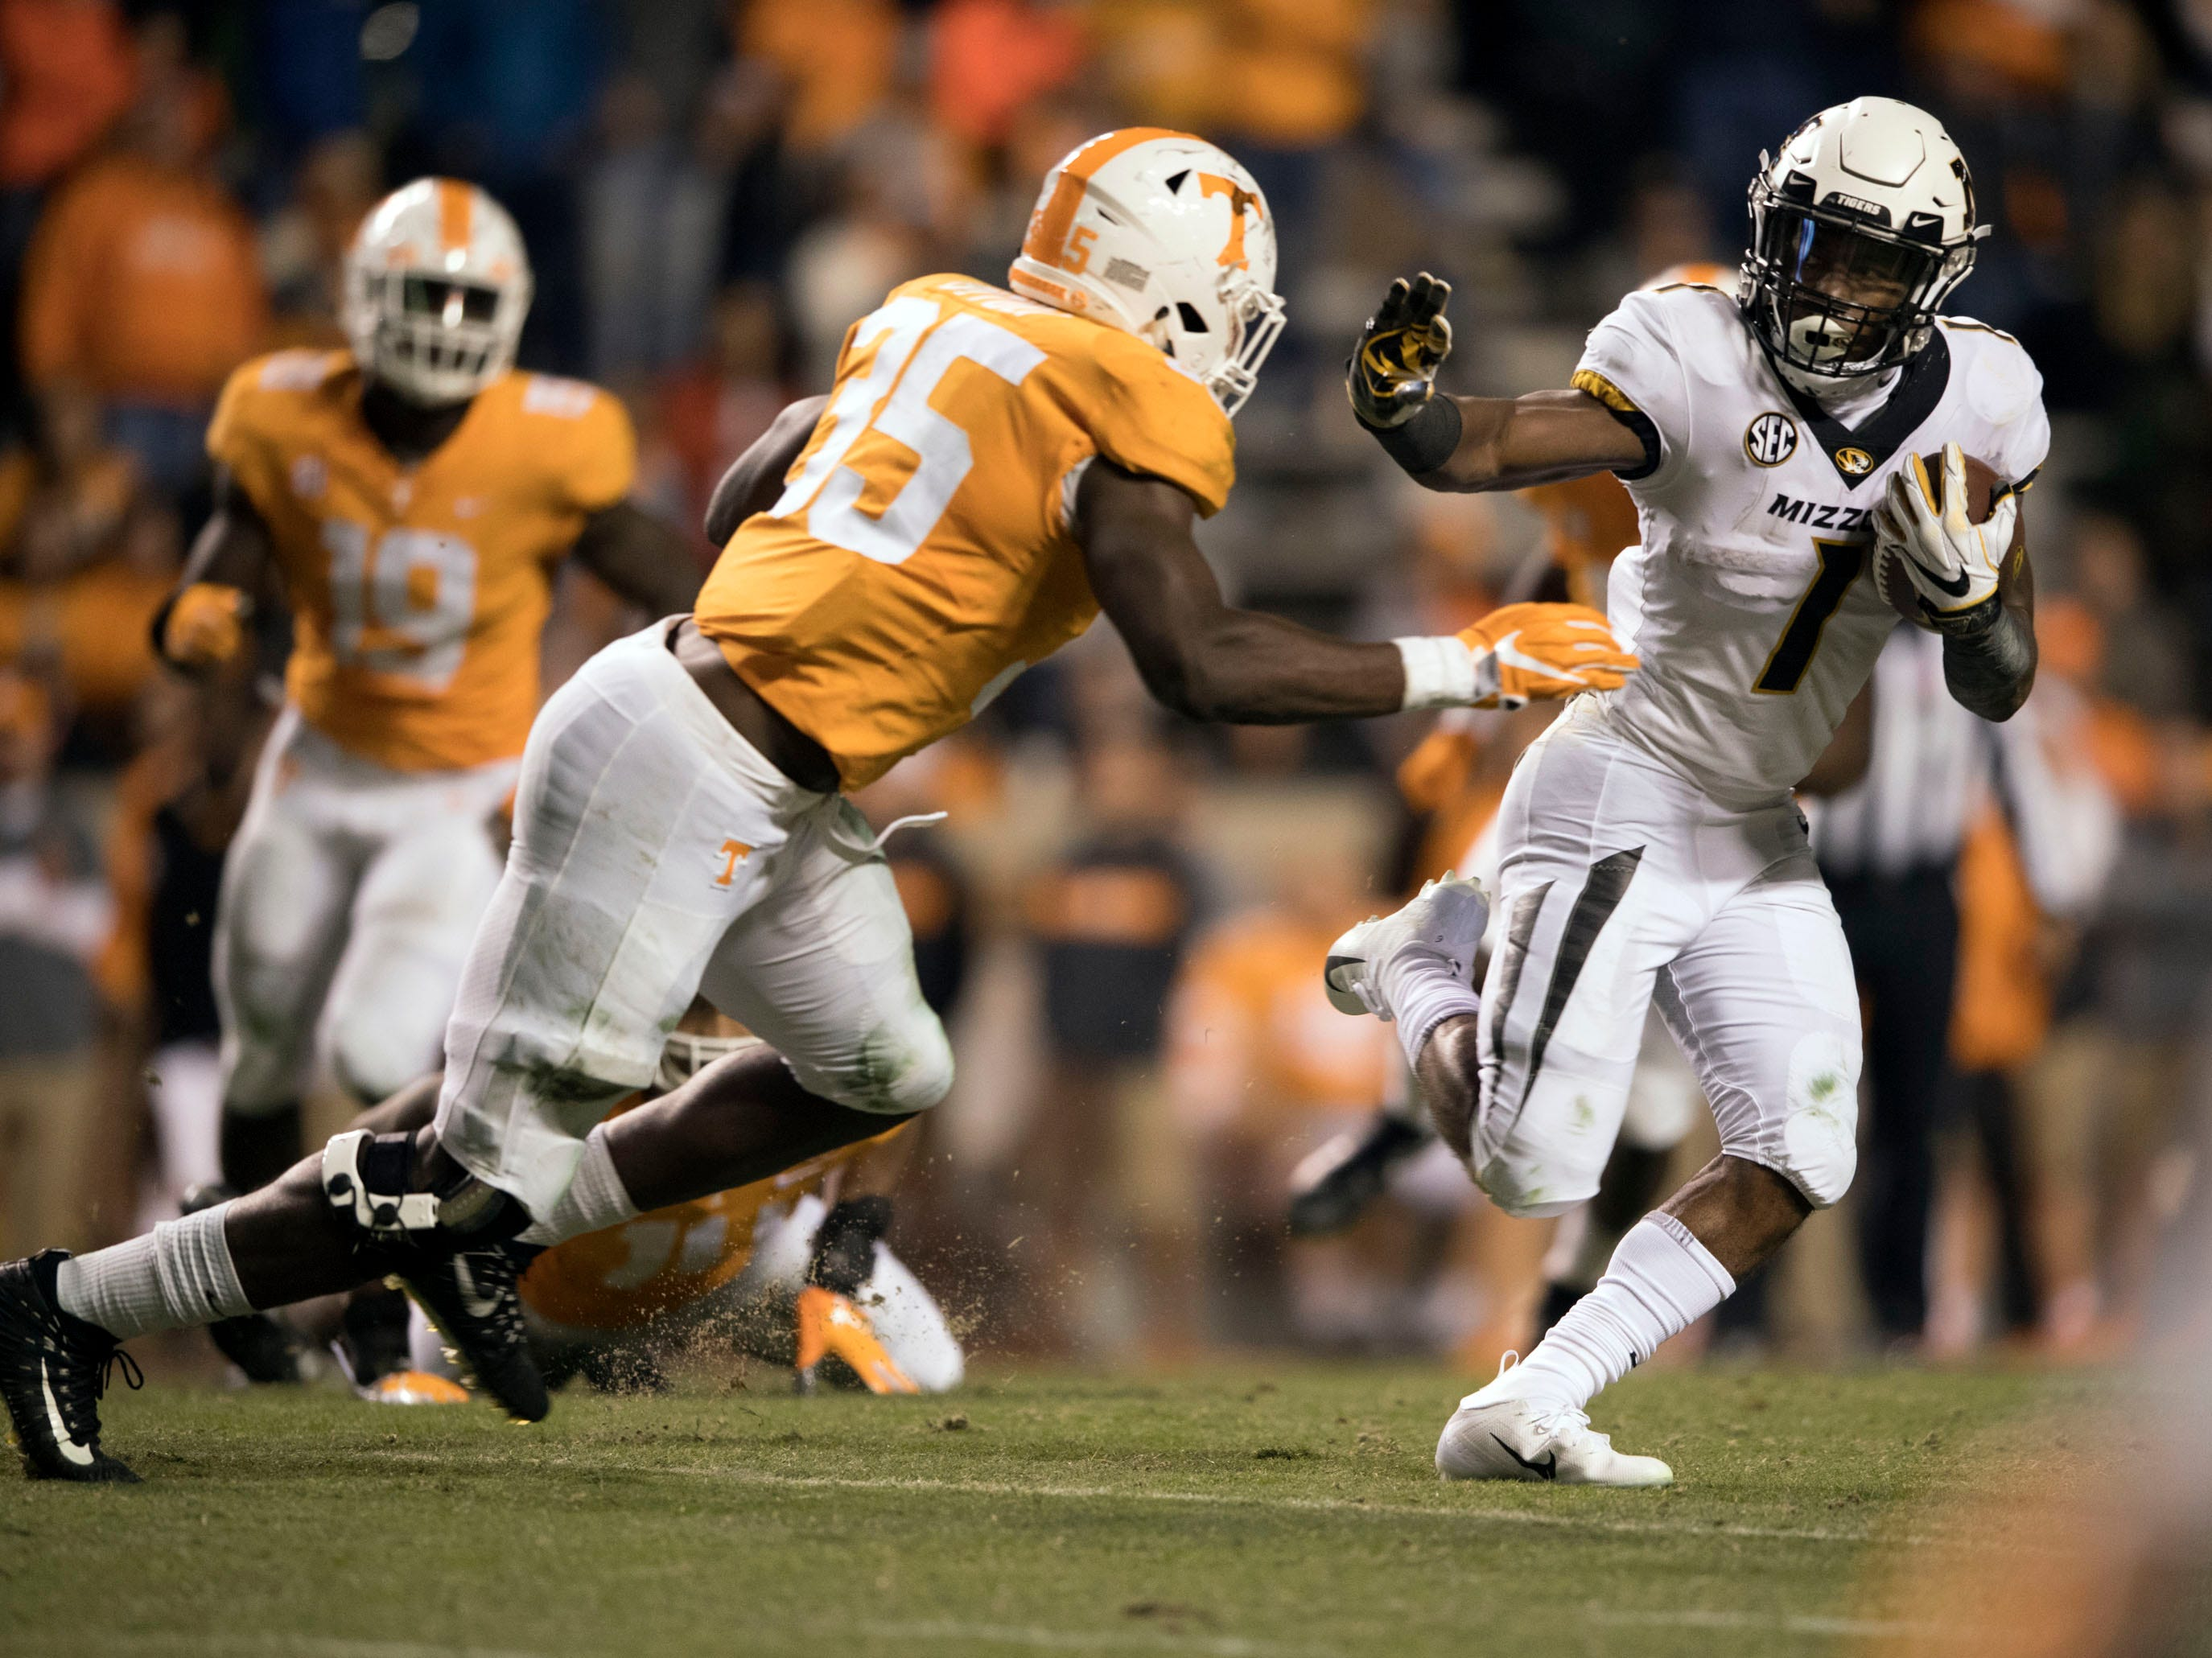 Missouri running back Tyler Badie (1) is pursued by Tennessee linebacker Daniel Bituli (35) during the Tennessee and Missouri football game on Saturday, November 17, 2018.